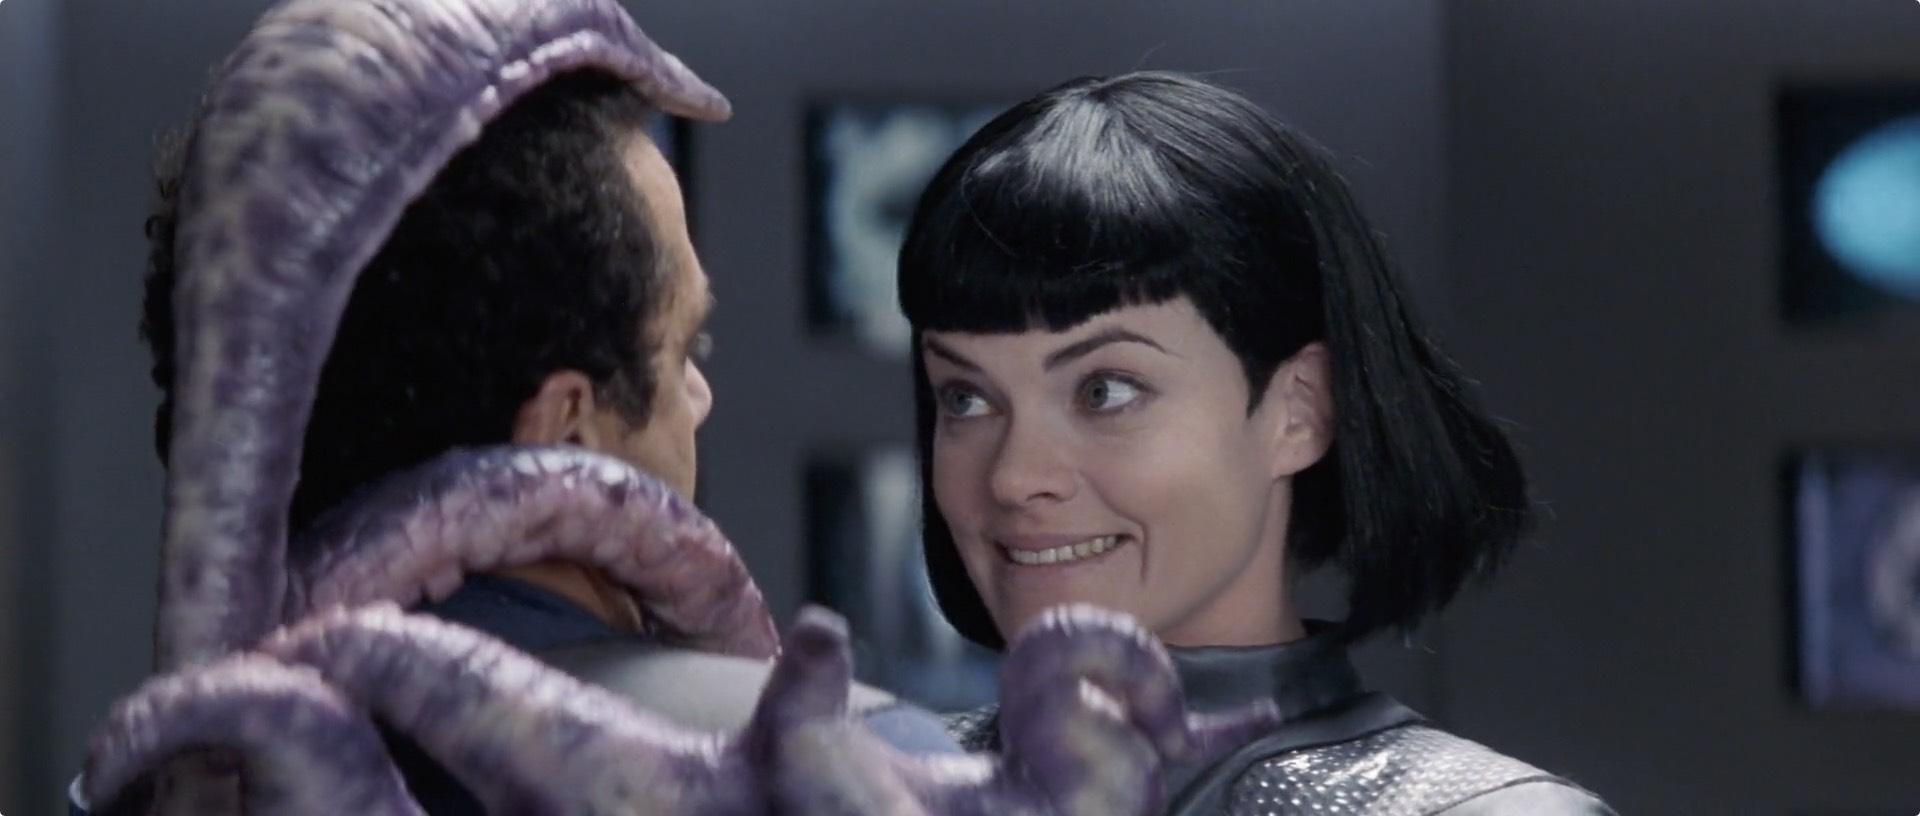 image Sigourney weaver in galaxy quest